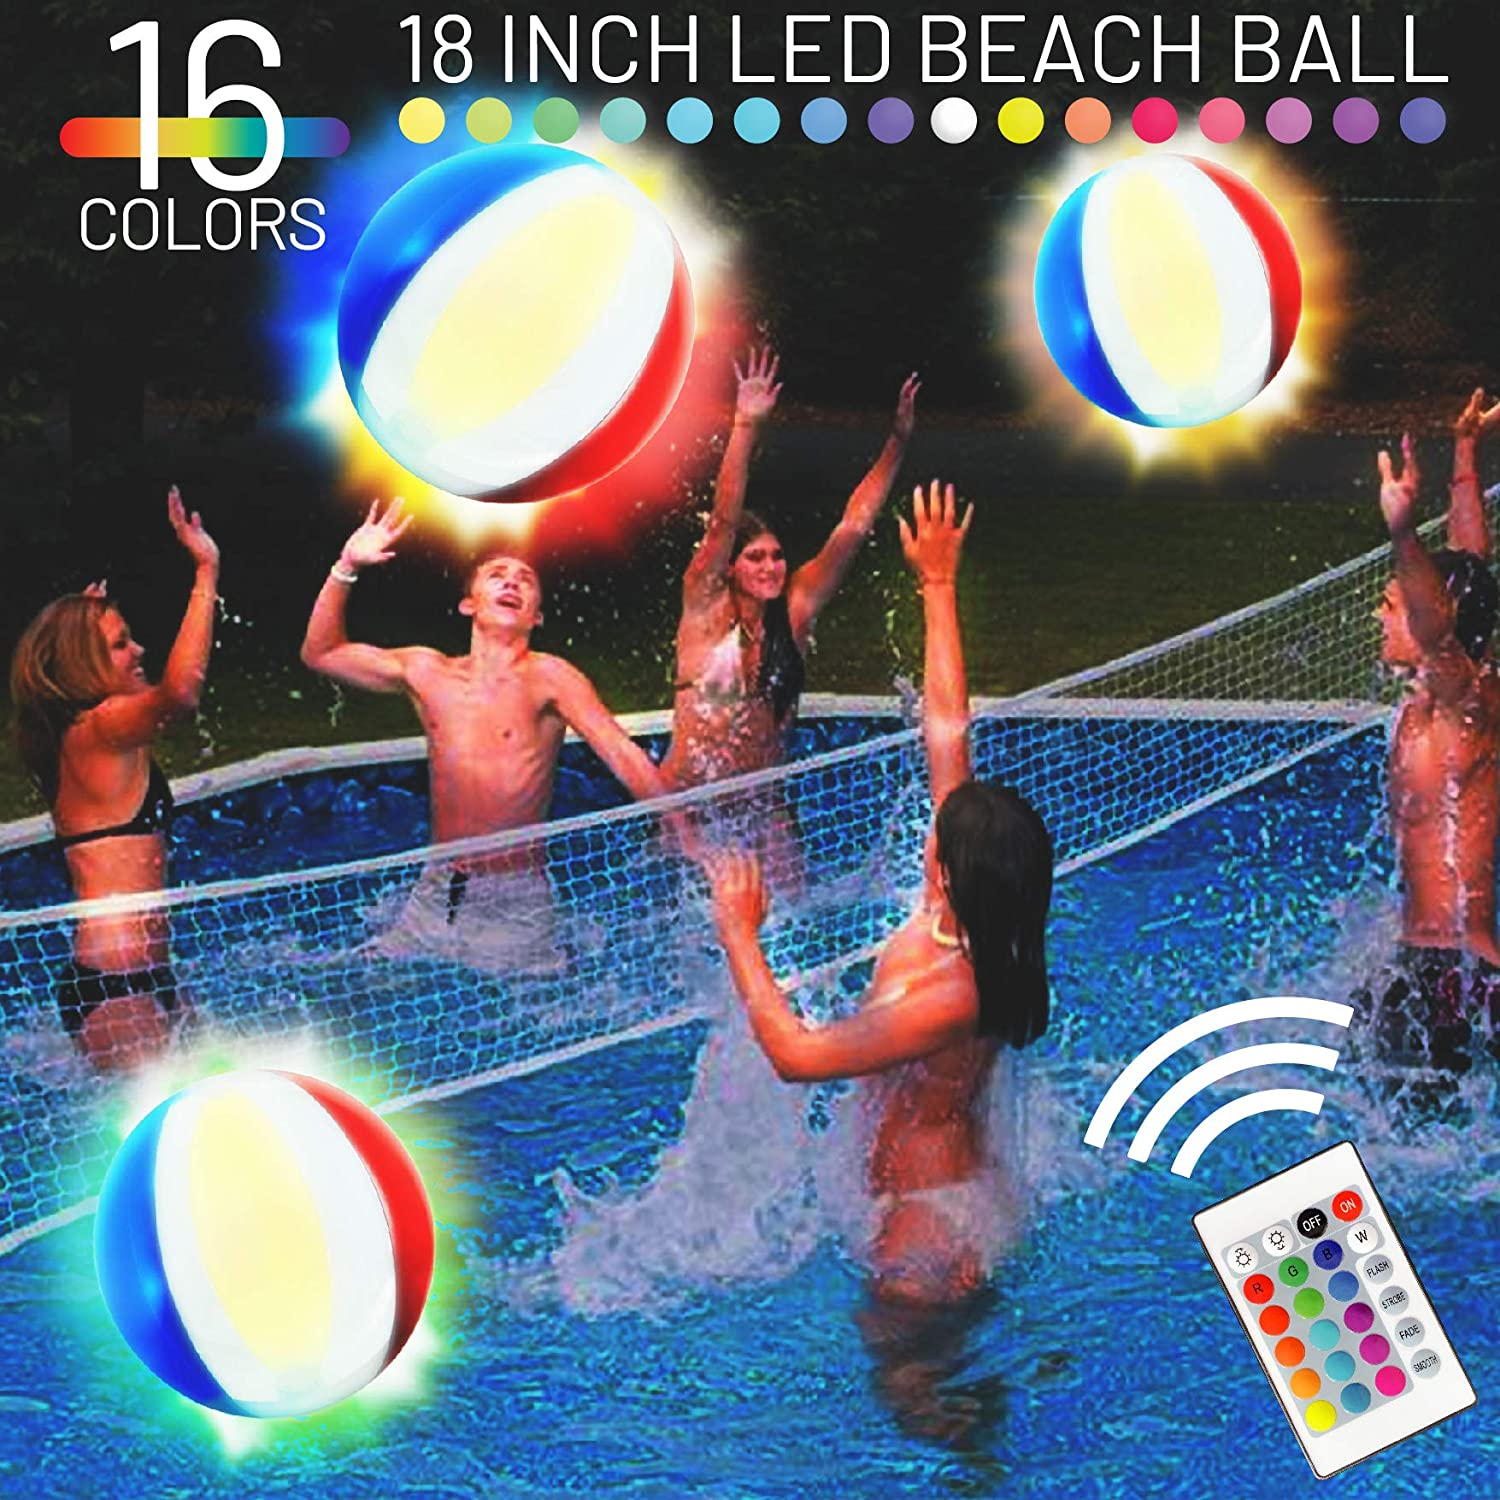 EYEWALK 18 LED Beach Ball Pool Volleyball, Inflatable Pool Toy Float, 16 Color Light Up Basketball Ball for Teens Adults, Pool Party Beach Games Night Swim Camping Lighting Pool Decorations (1PC)